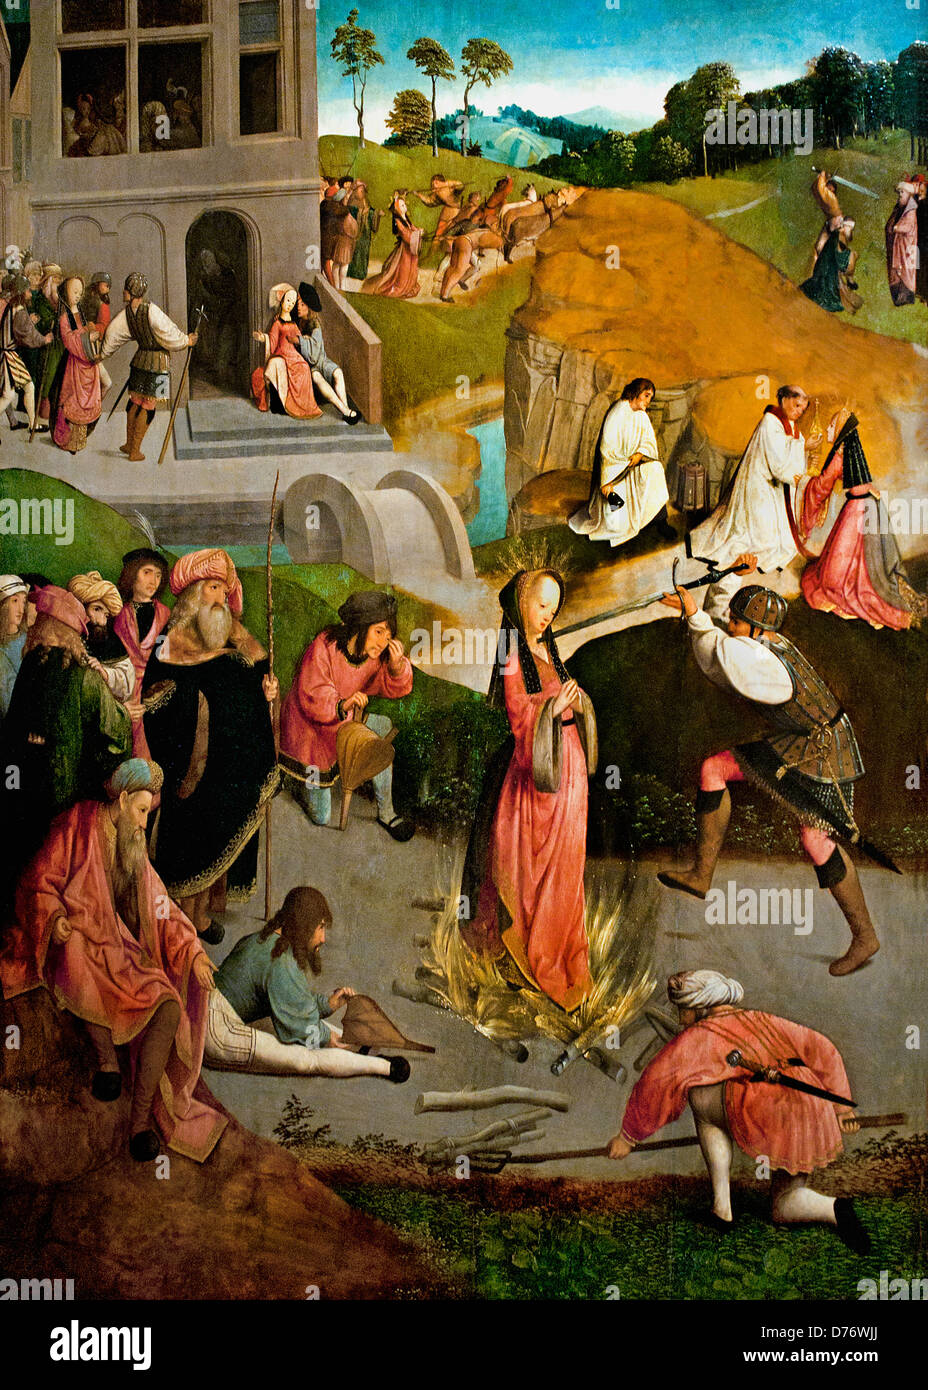 The Martyrdom of Saint Lucy 1490-1510 Master of the Figdor Deposition Haarlem or Amsterdam Dutch Netherlands - Stock Image